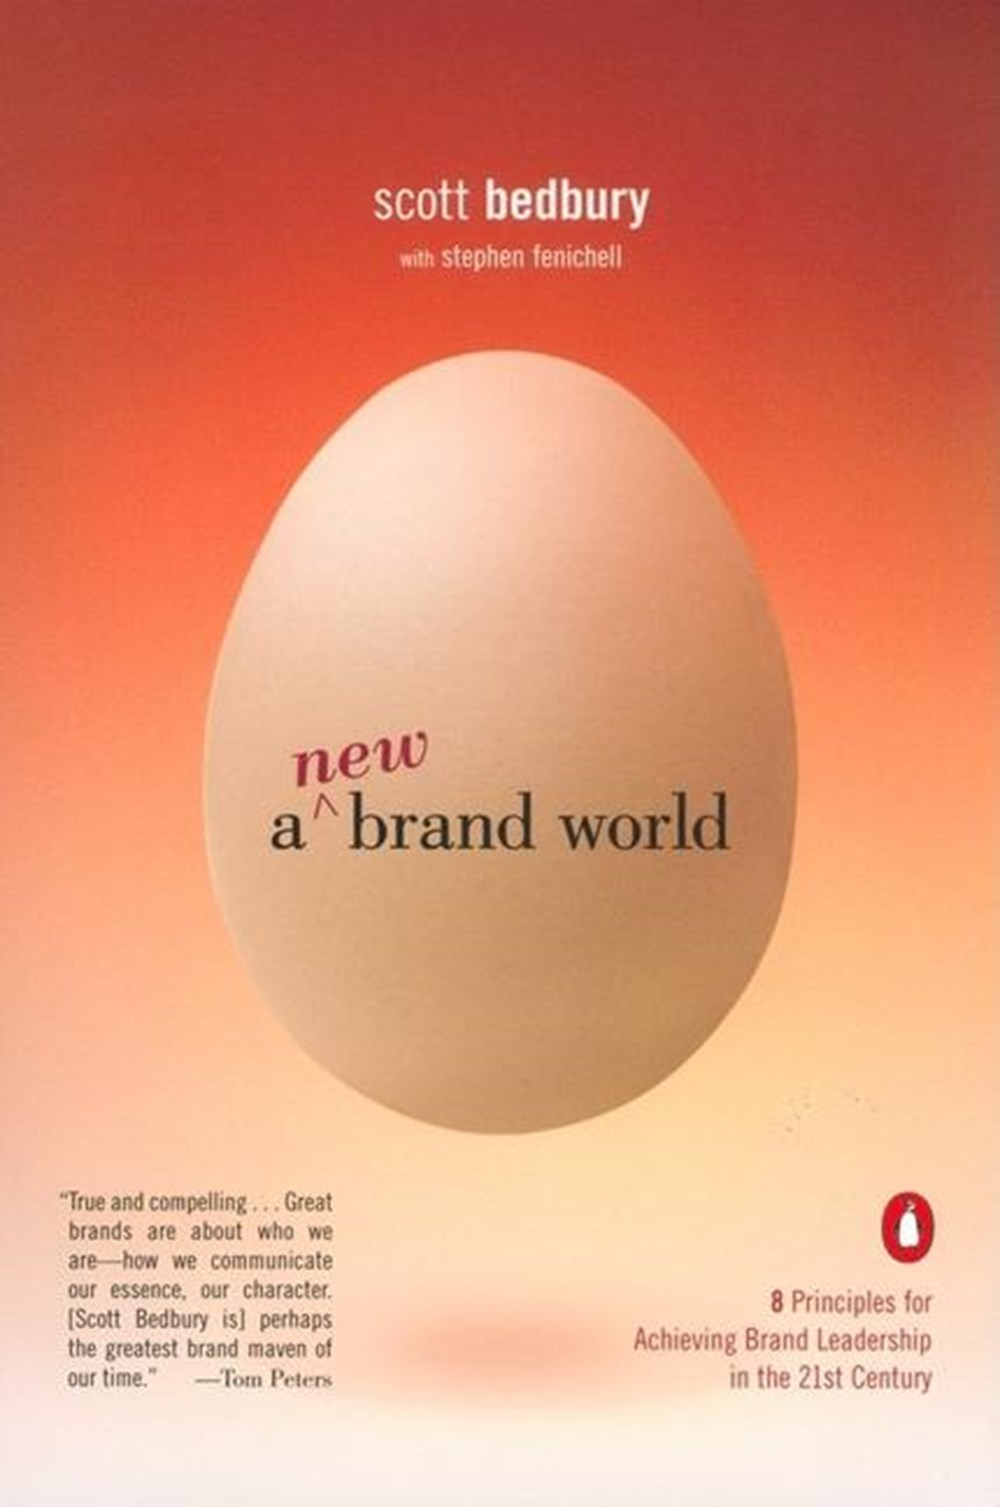 New Brand World 8 Principles for Achieving Brand Leadership in the 21st Century